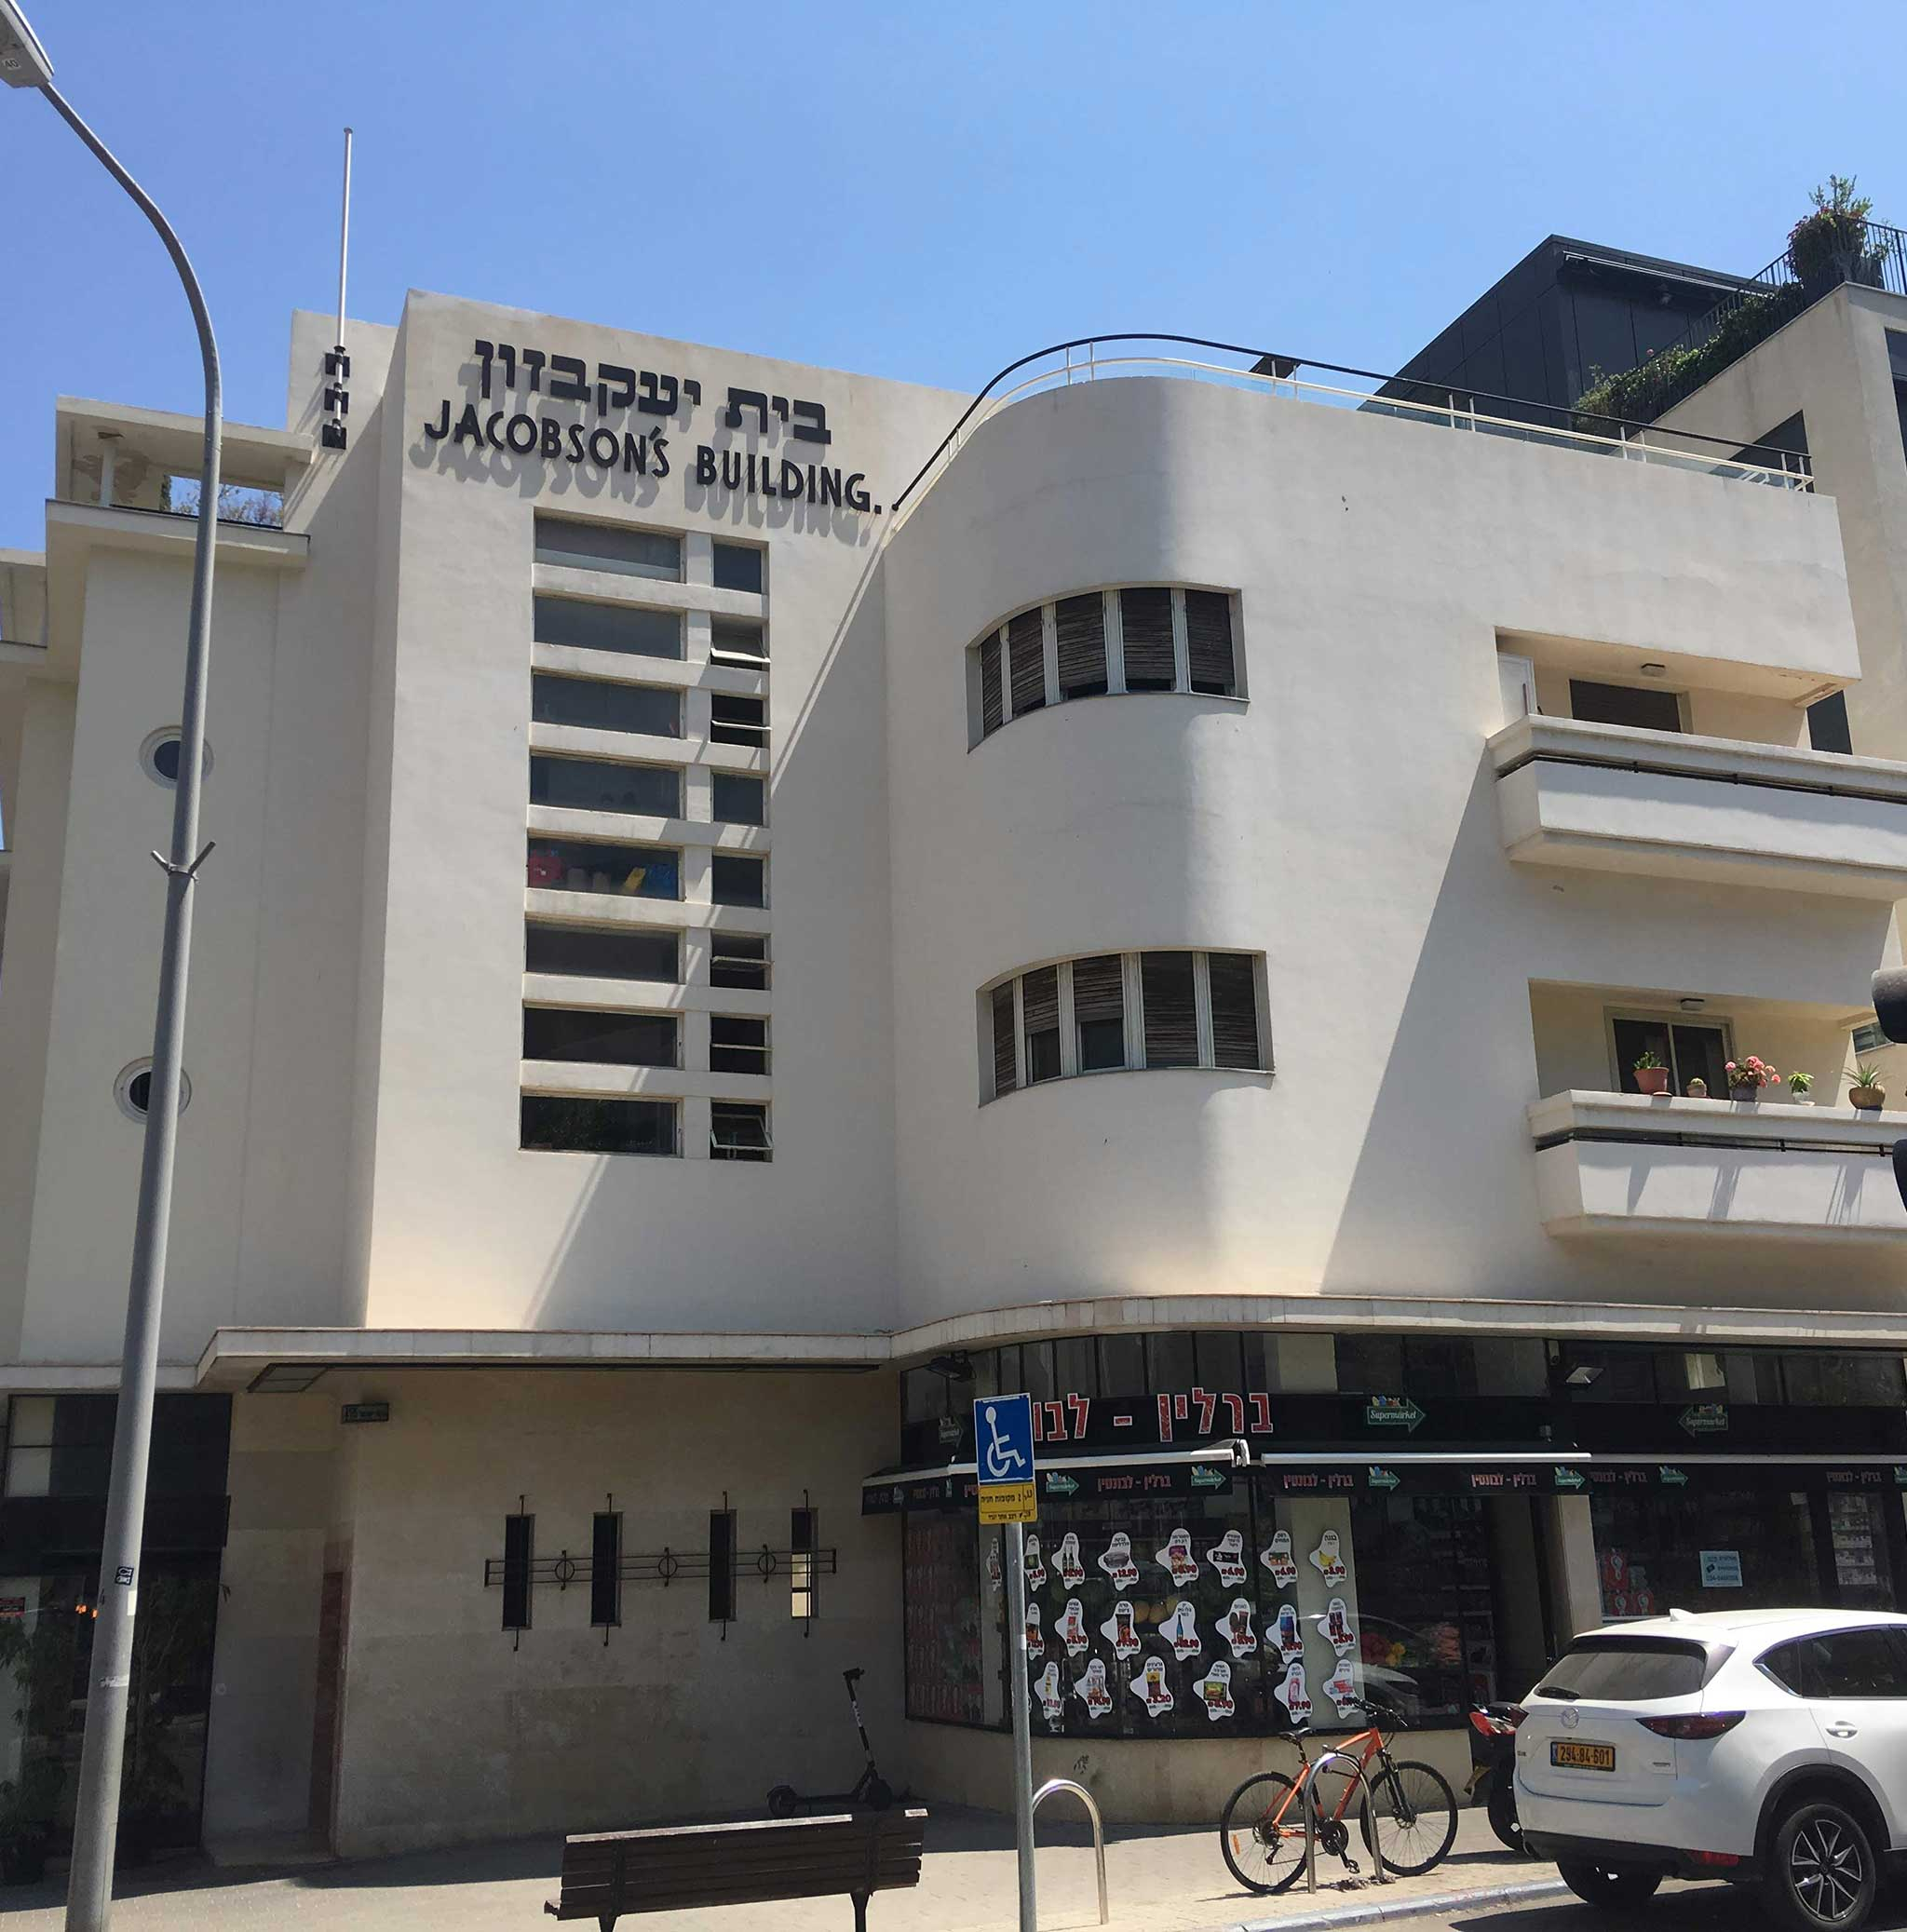 Jacobson's Building‏‎ on Tel Aviv audio tour The Electrifying Story of Gan HaHashmal and Its Architecture